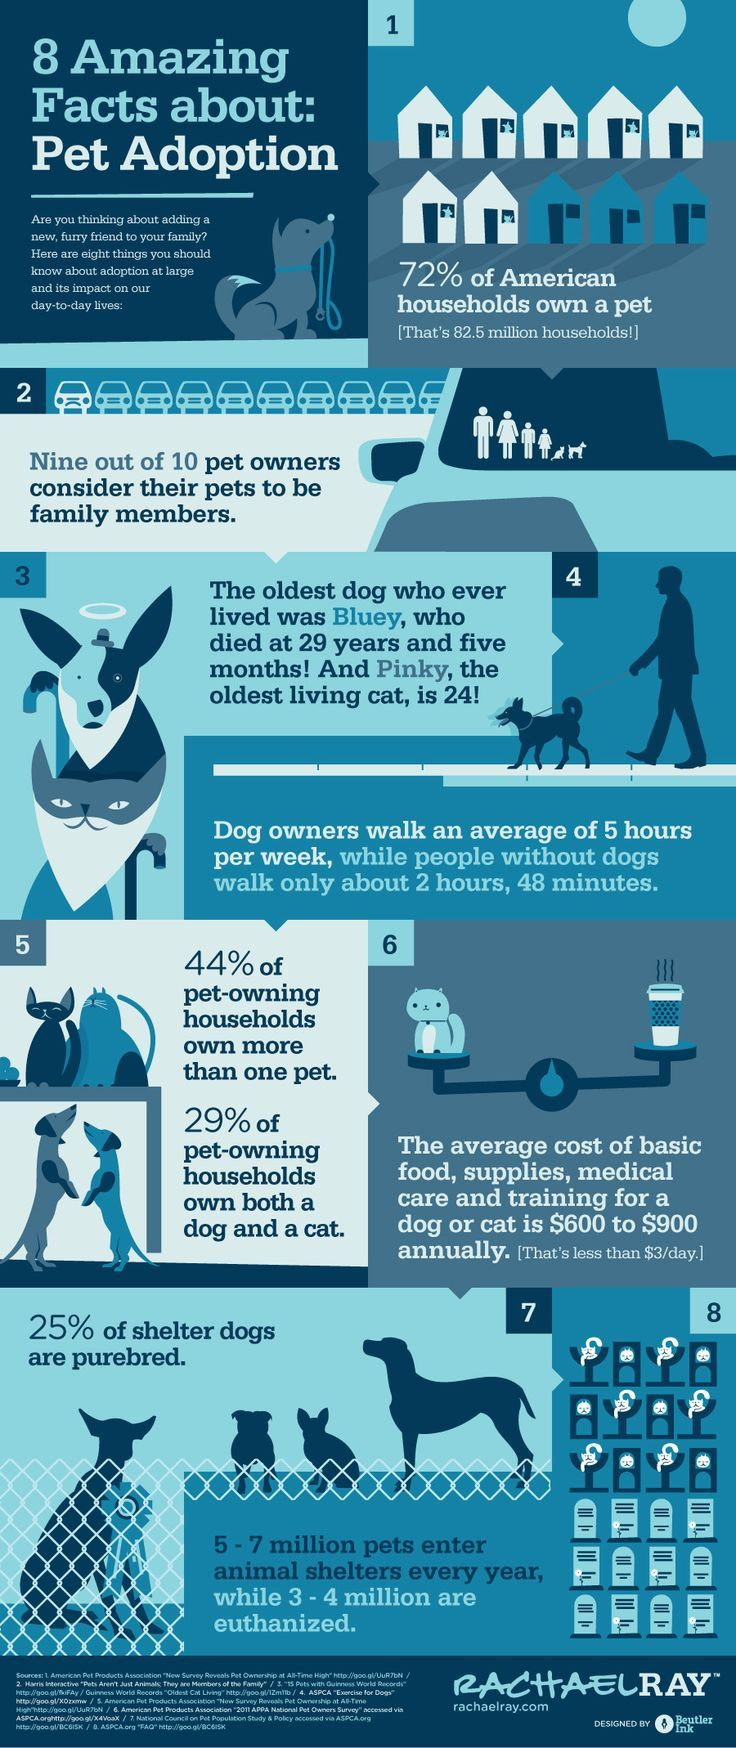 8 Amazing Facts About Pet Adoption